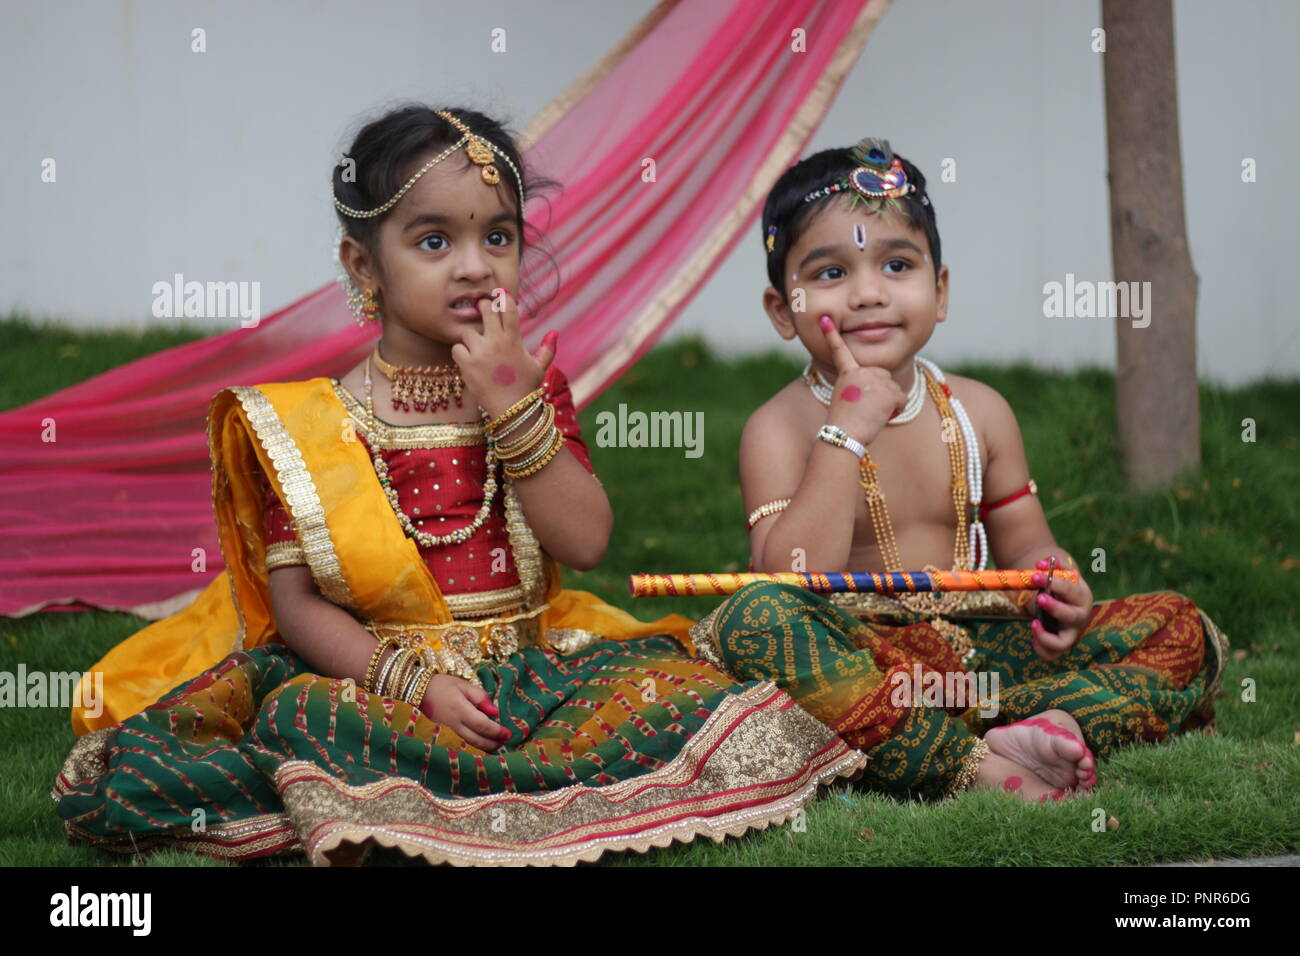 Radha Krishna Stock Photos & Radha Krishna Stock Images - Alamy